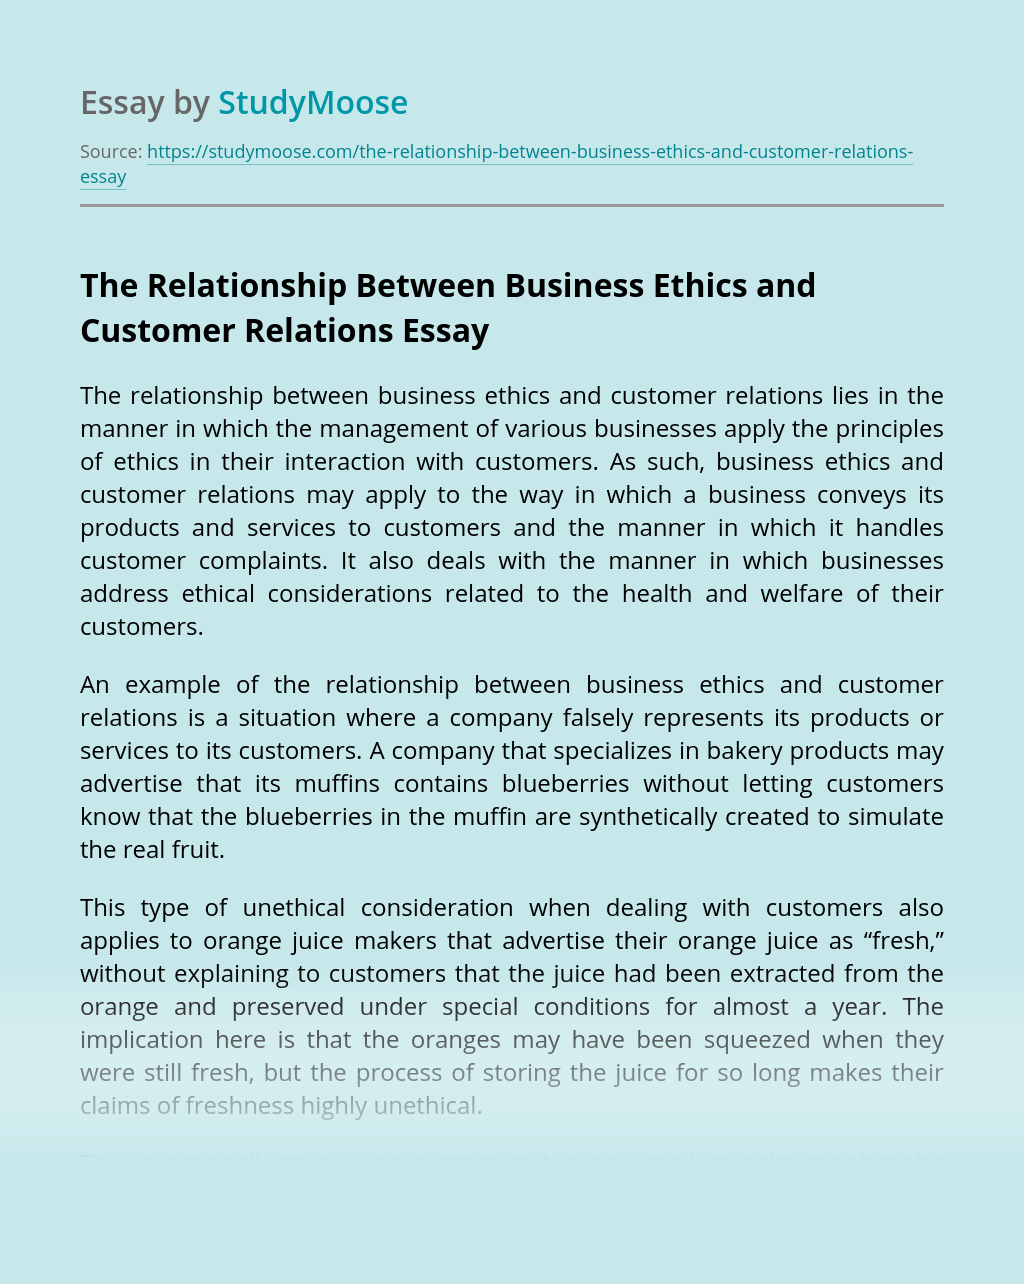 The Relationship Between Business Ethics and Customer Relations